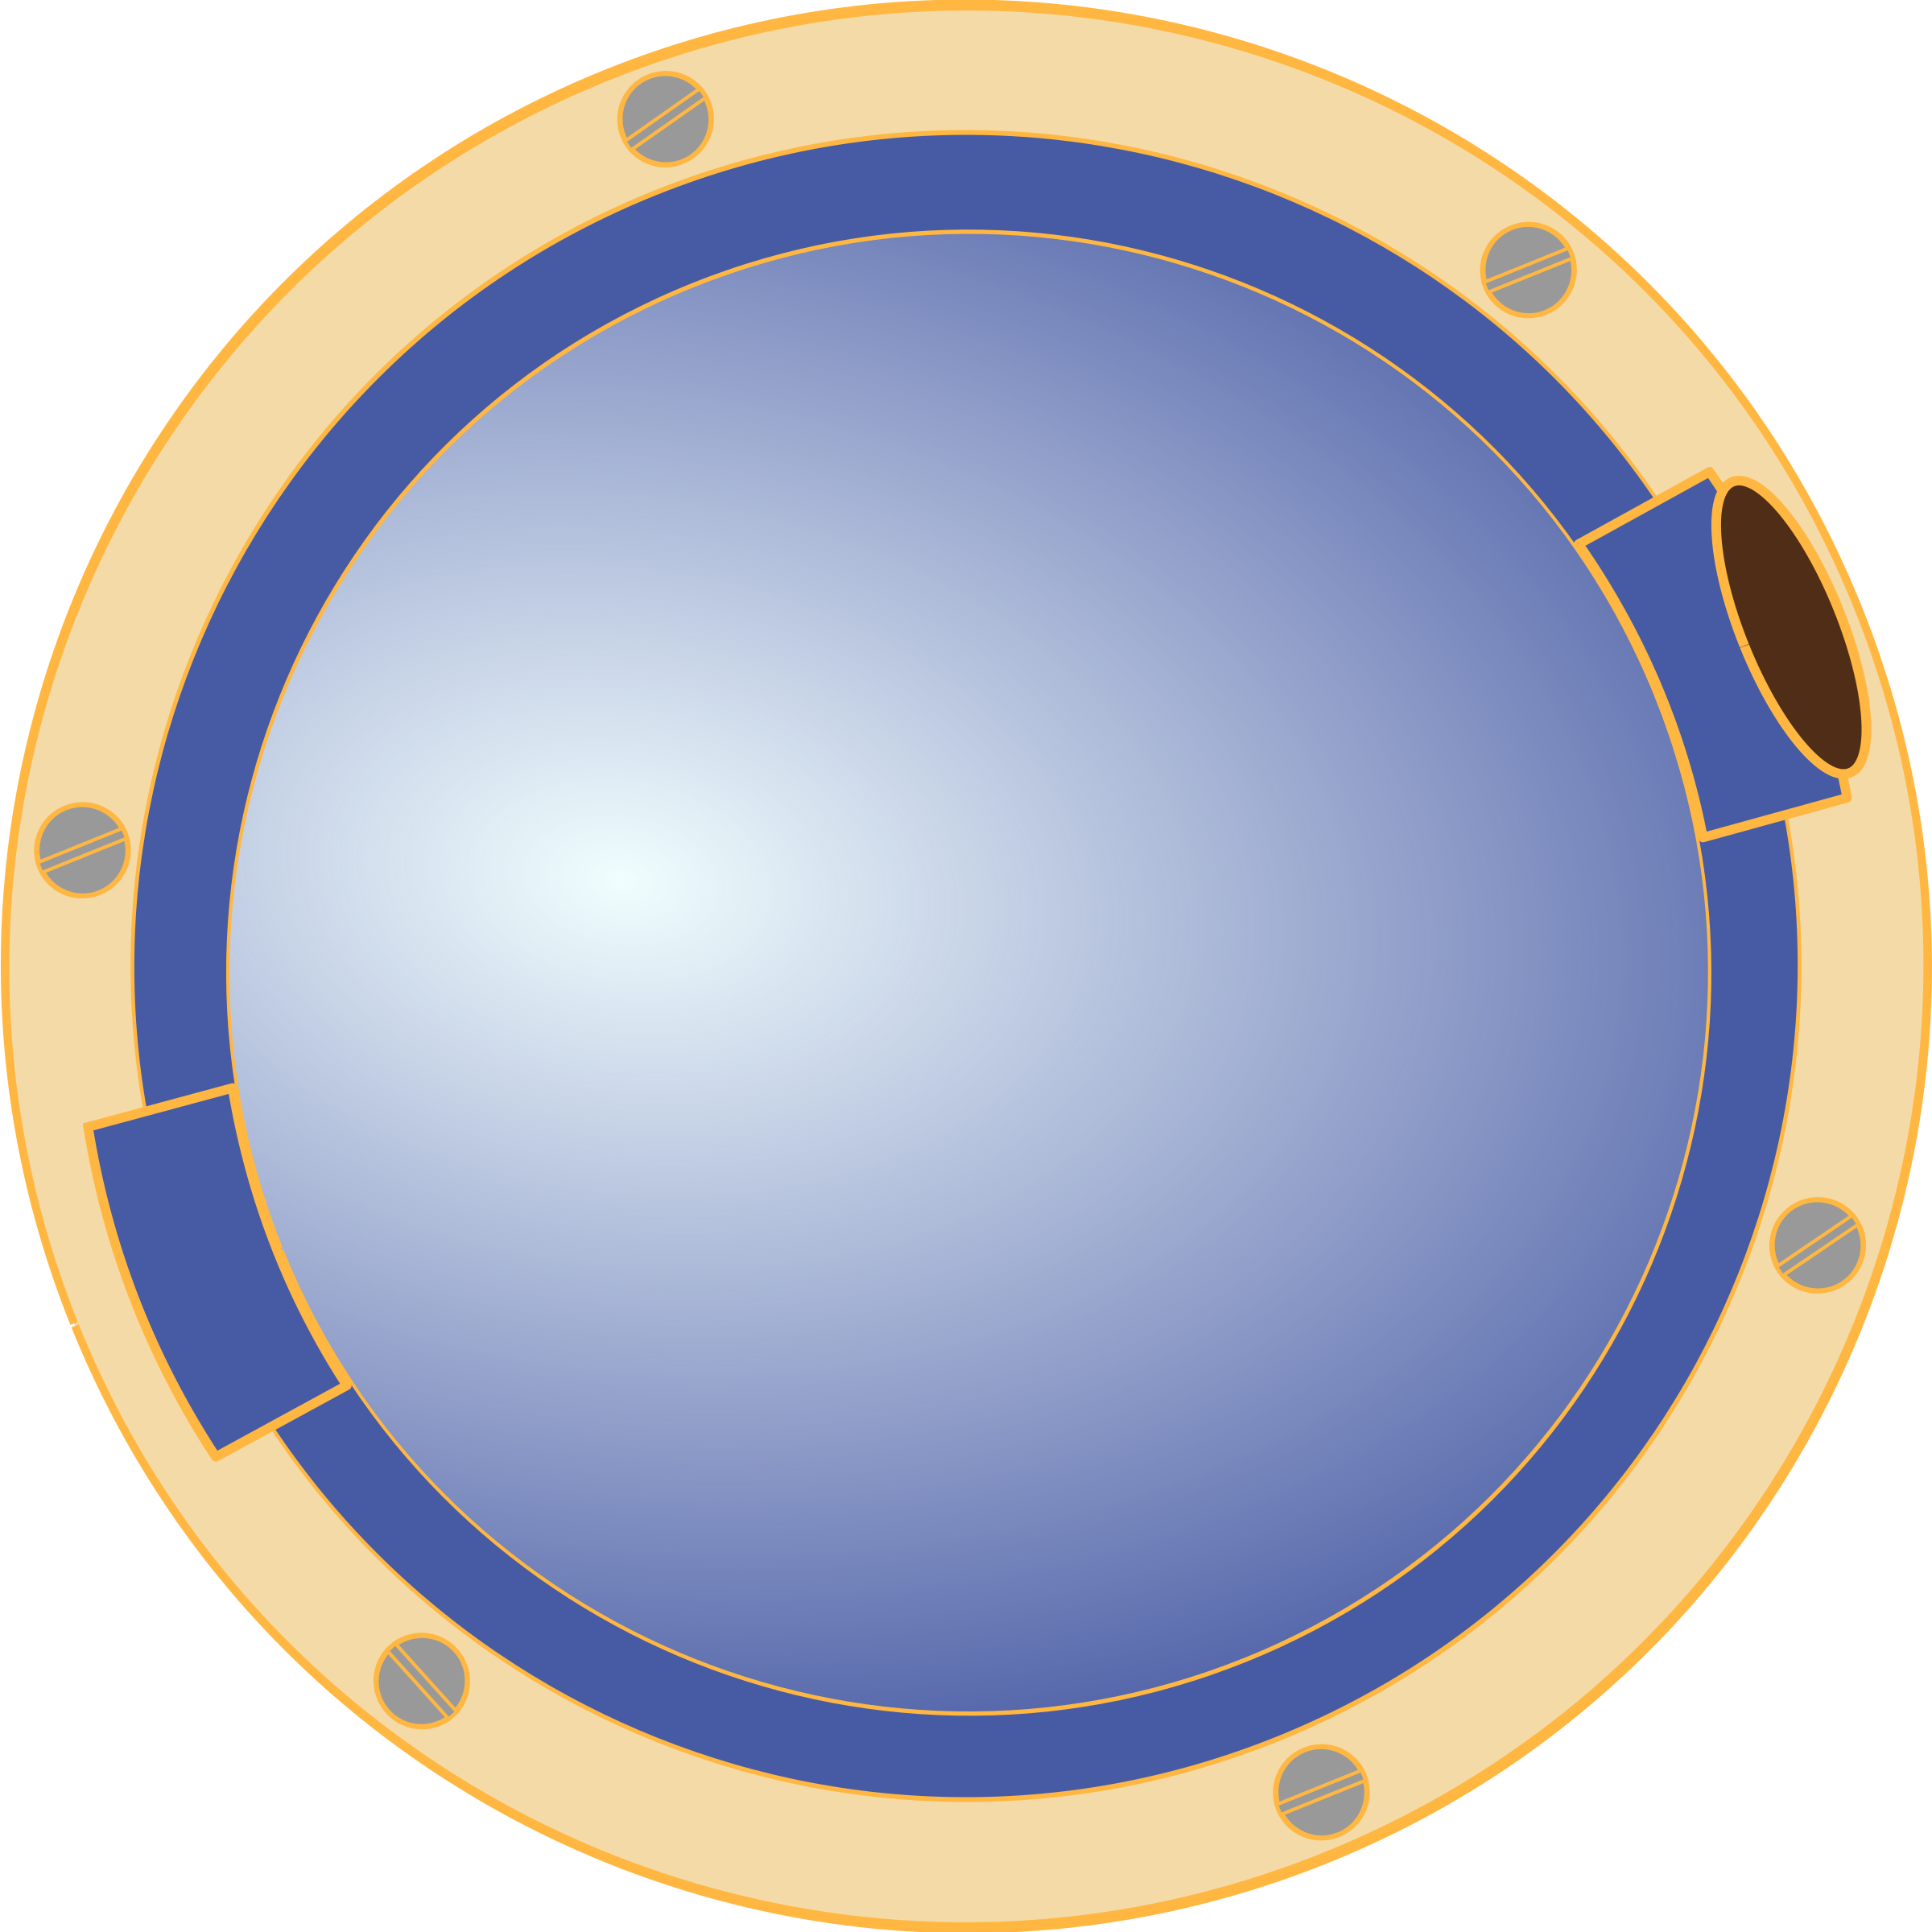 Port hole png. Clipart images pngio submarine